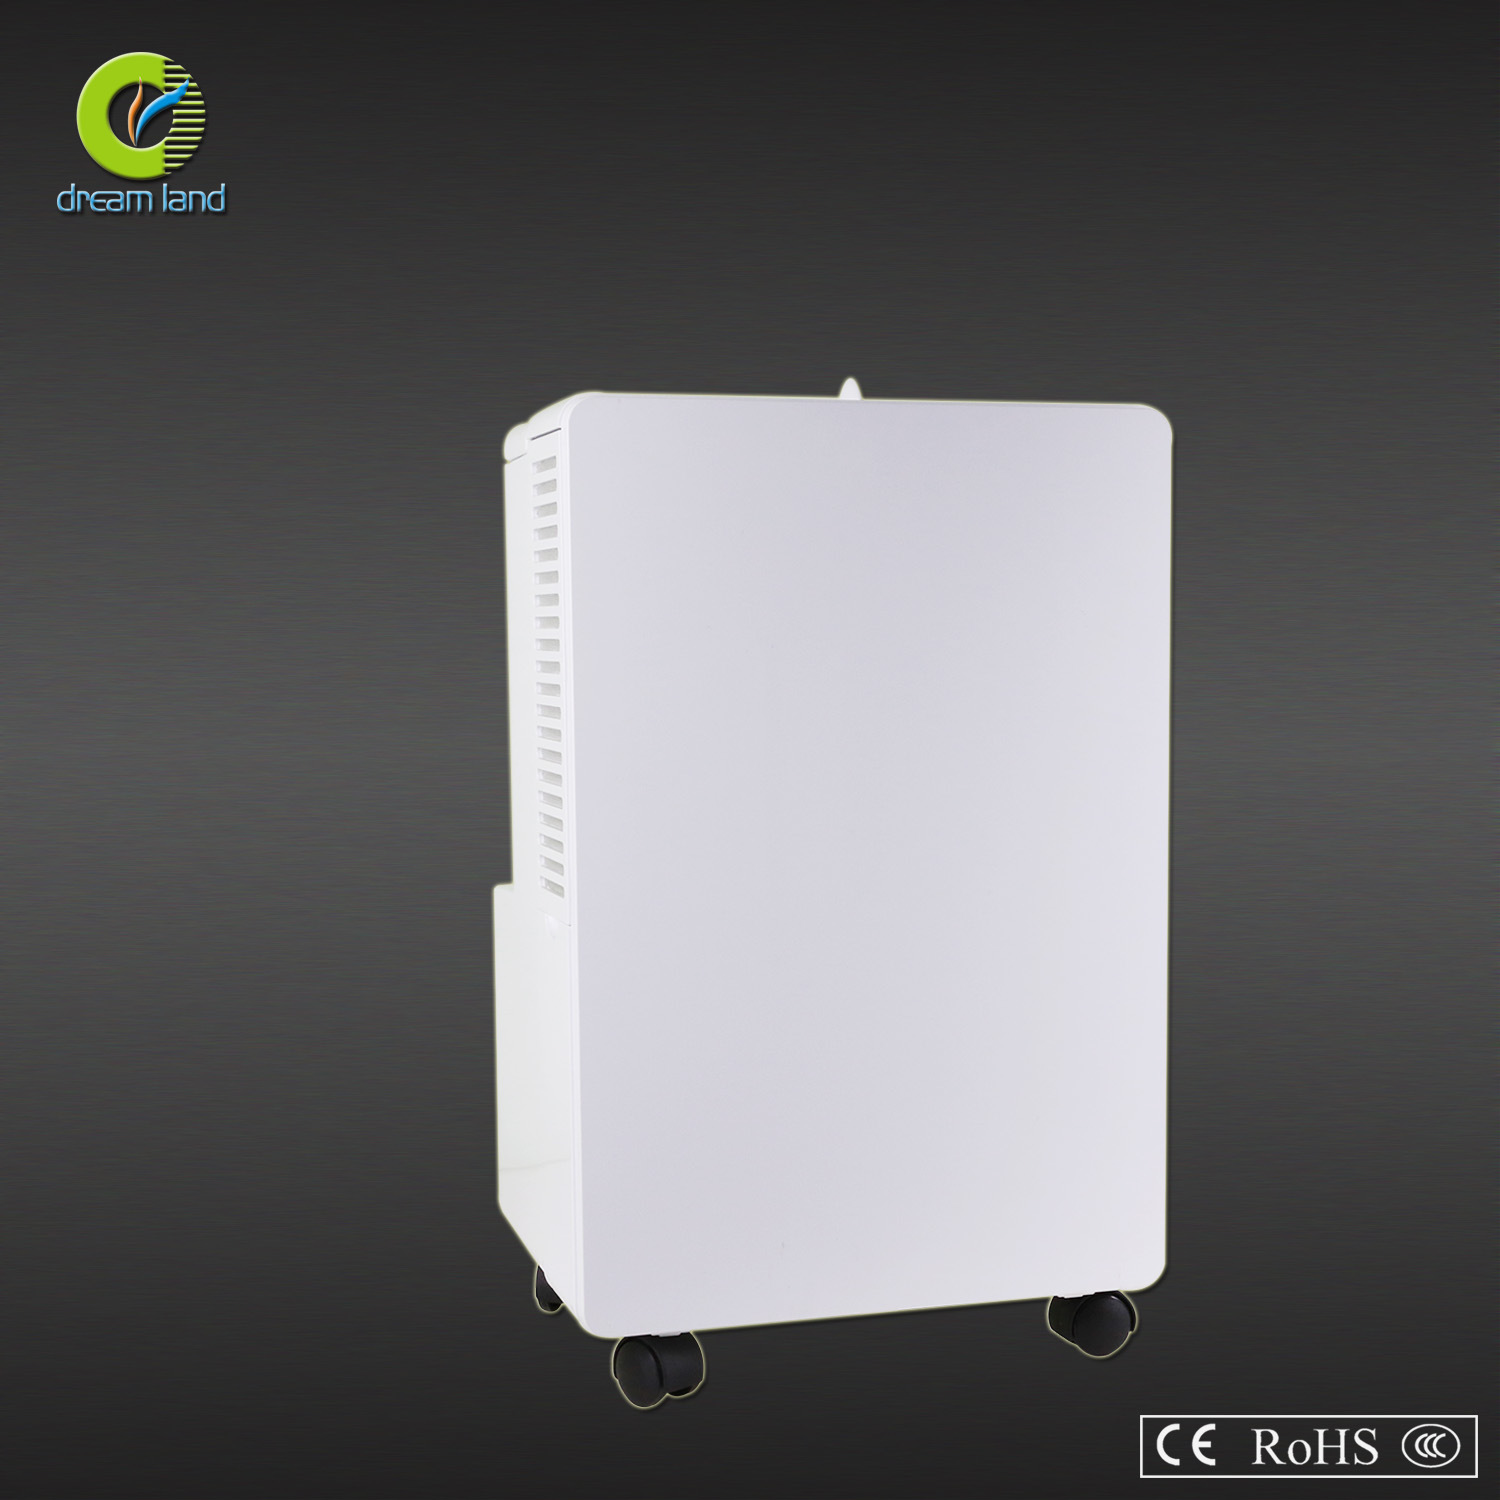 China Home Portable Dehumidifier with Remote Controller Photos  #8DB813